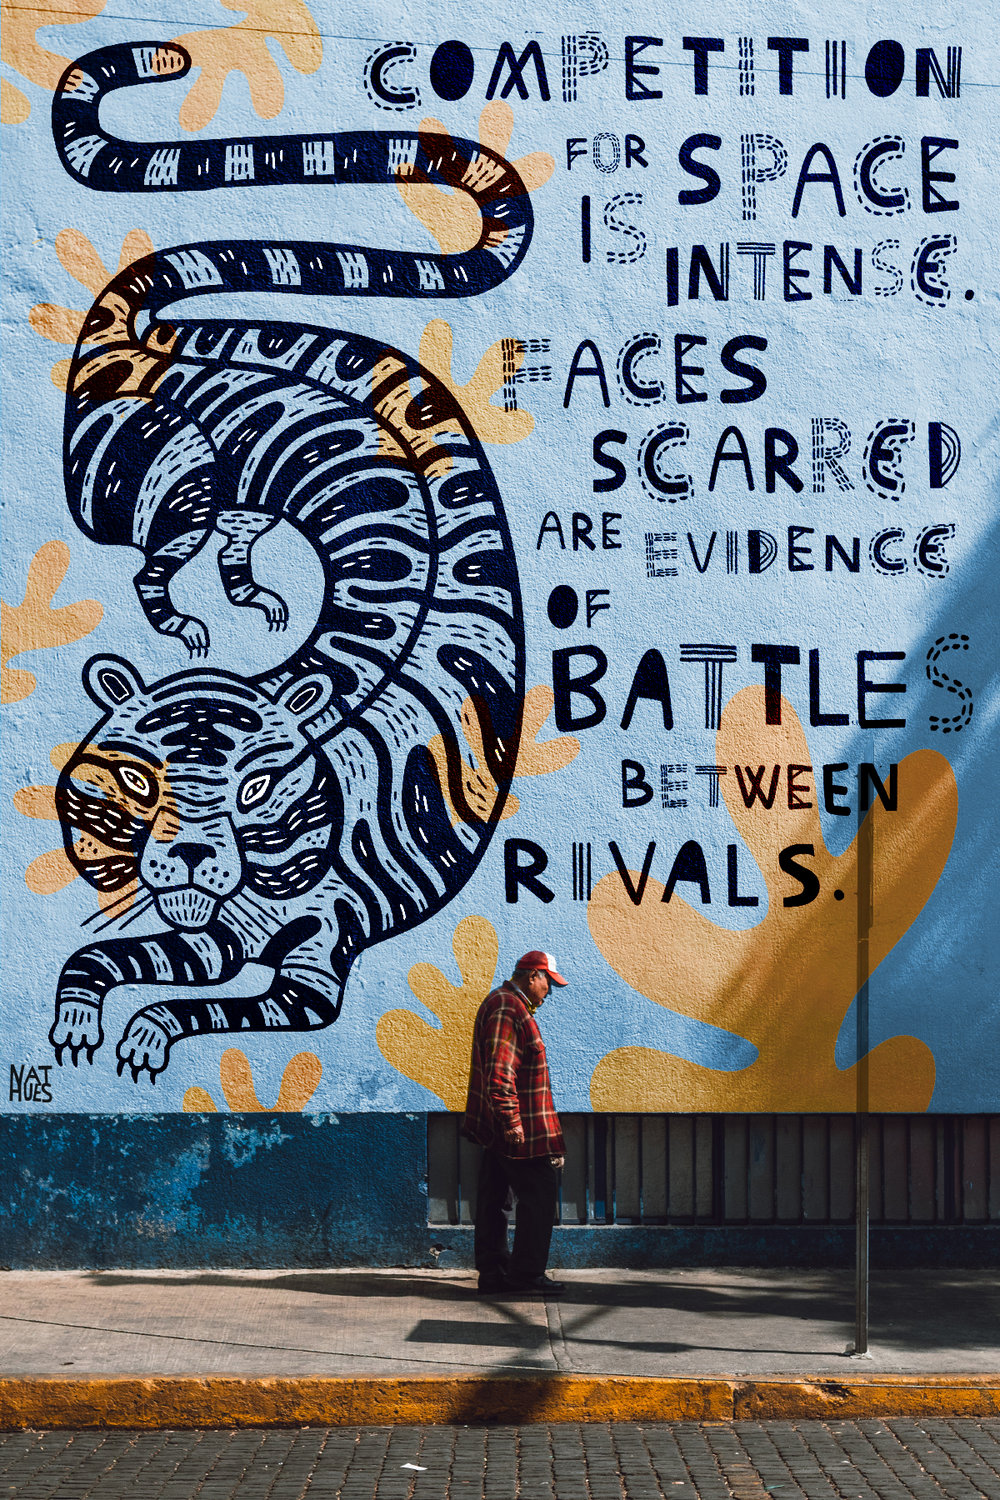 """""""Competition for space is intense. Faces scarred are evidence of battles between rivals."""" - Quote from a David Attenborough documentary. Digital mock-up of a mural. 2019."""